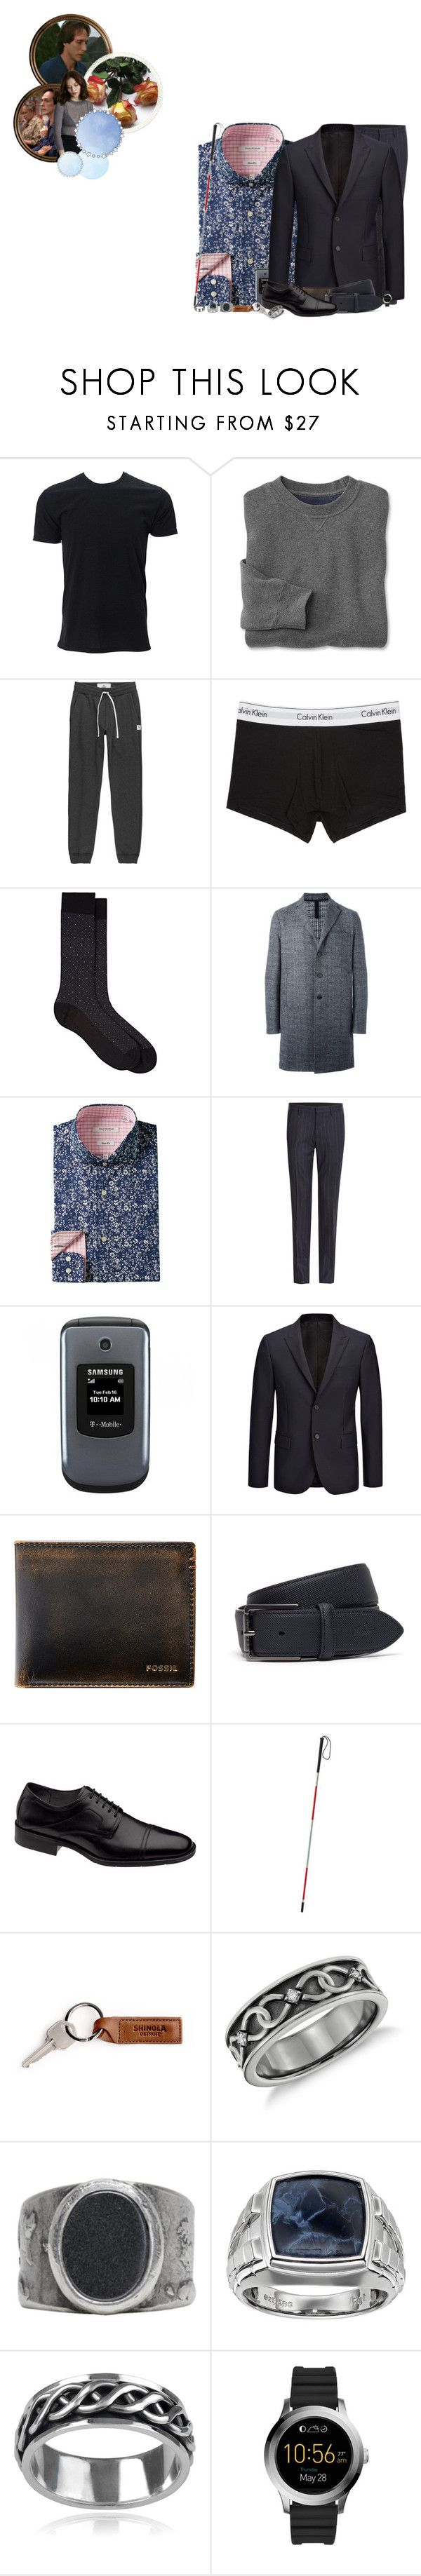 """[VISUAL] { you sounded wonderful, I only wish I could have seen you }"" by morningstar1399 ❤ liked on Polyvore featuring Simplex Apparel, Reigning Champ, Calvin Klein Underwear, Barneys New York, Harris Wharf London, Isaac Mizrahi, Etro, Samsung, Joseph and FOSSIL"